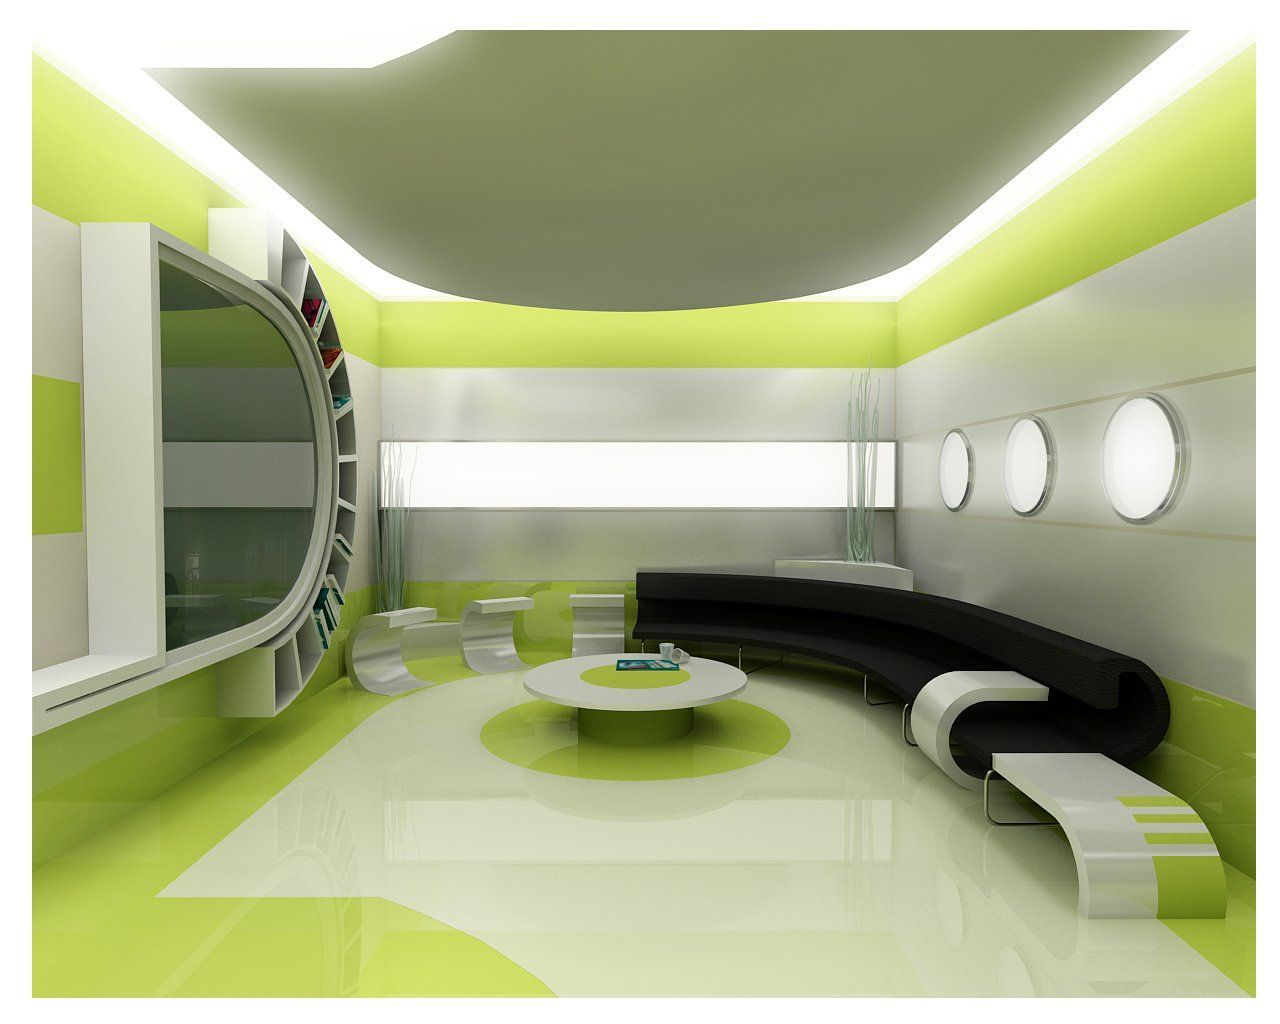 Awesome Green Interior Design pictures gallery of awesome green interior design best ideas about green interior design on pinterest green Interior Amusing Living Rooms Interior Design Inspiring Creativity Cosmic Green Interior Design With Ceiling